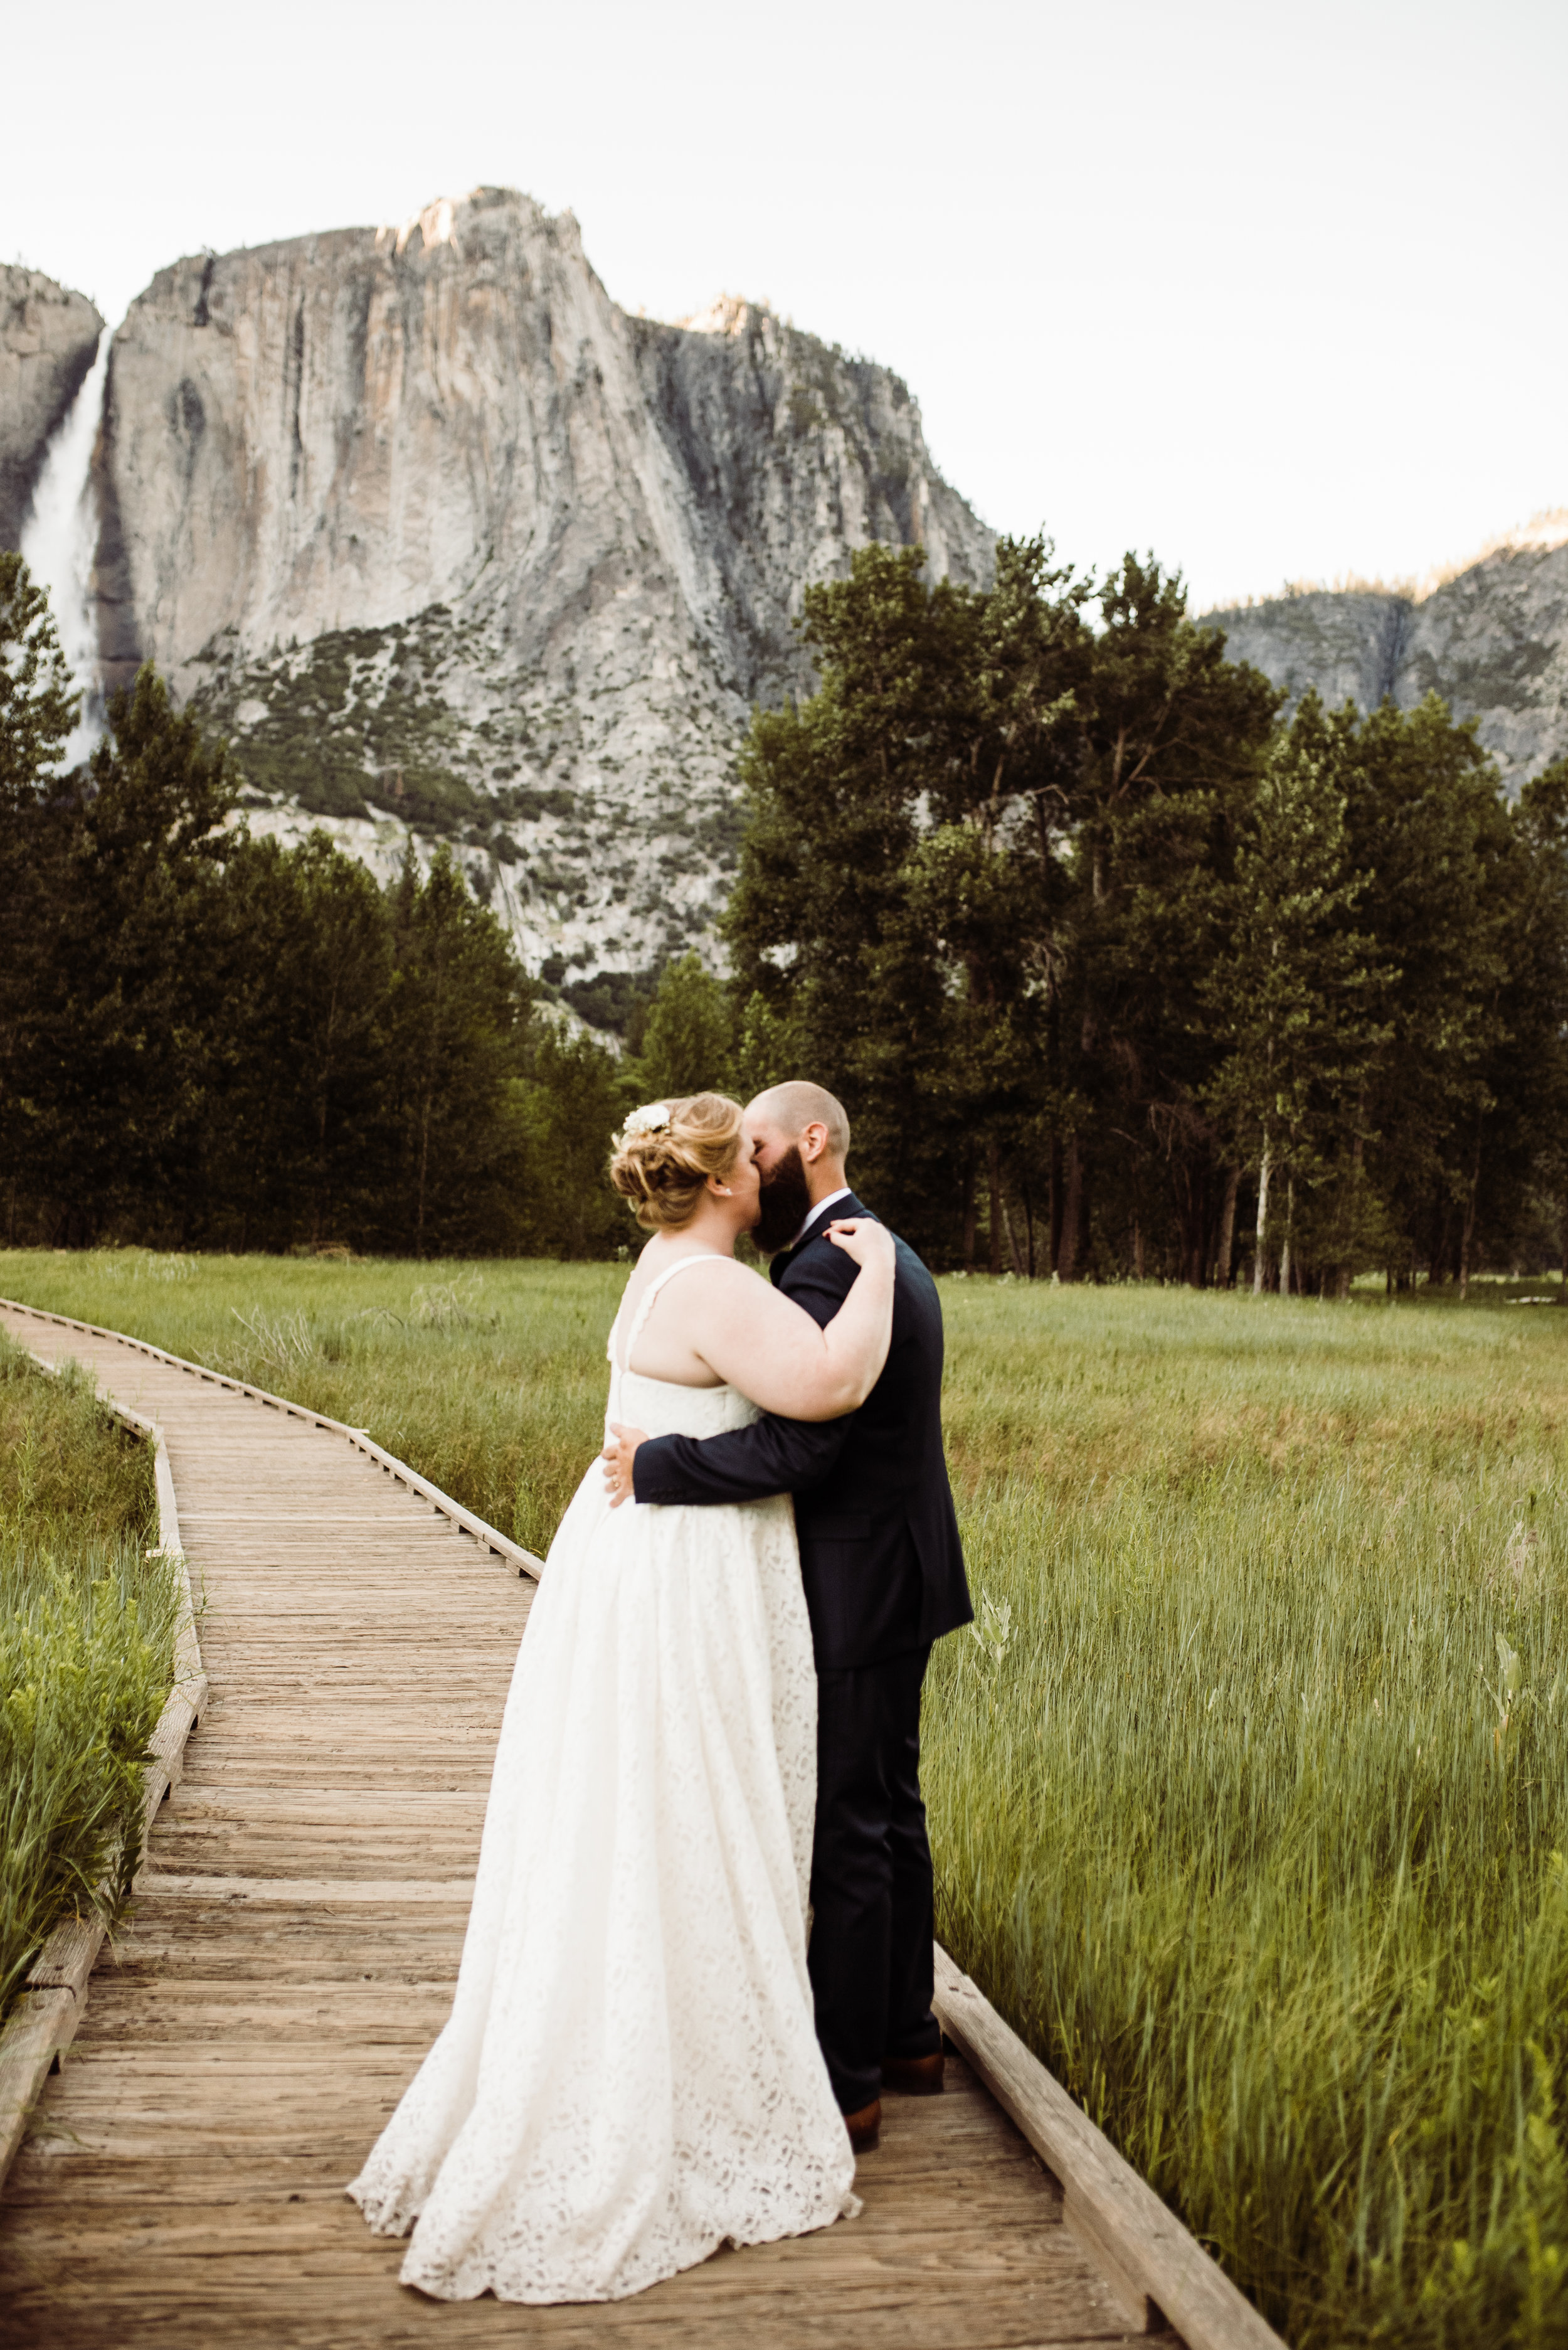 After the couple exchanged vows at Glacier Point, we took summery sunset photos in Yosemite Valley